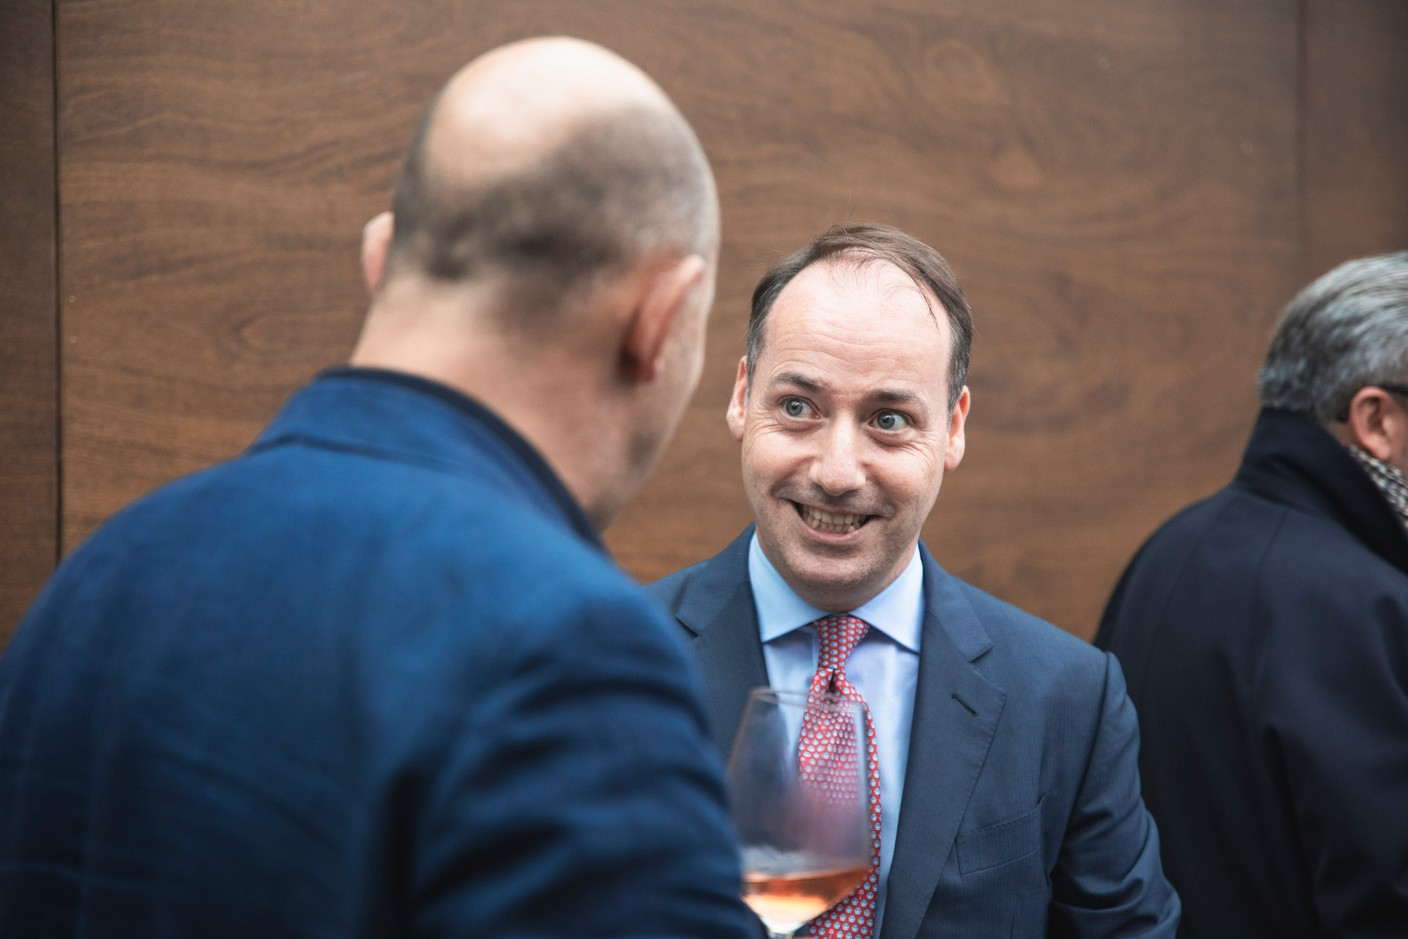 Enrique Sacau of Kneip is pictured at Delano's 10th anniversary party, 13 July 2021. Simon Verjus/Maison Moderne